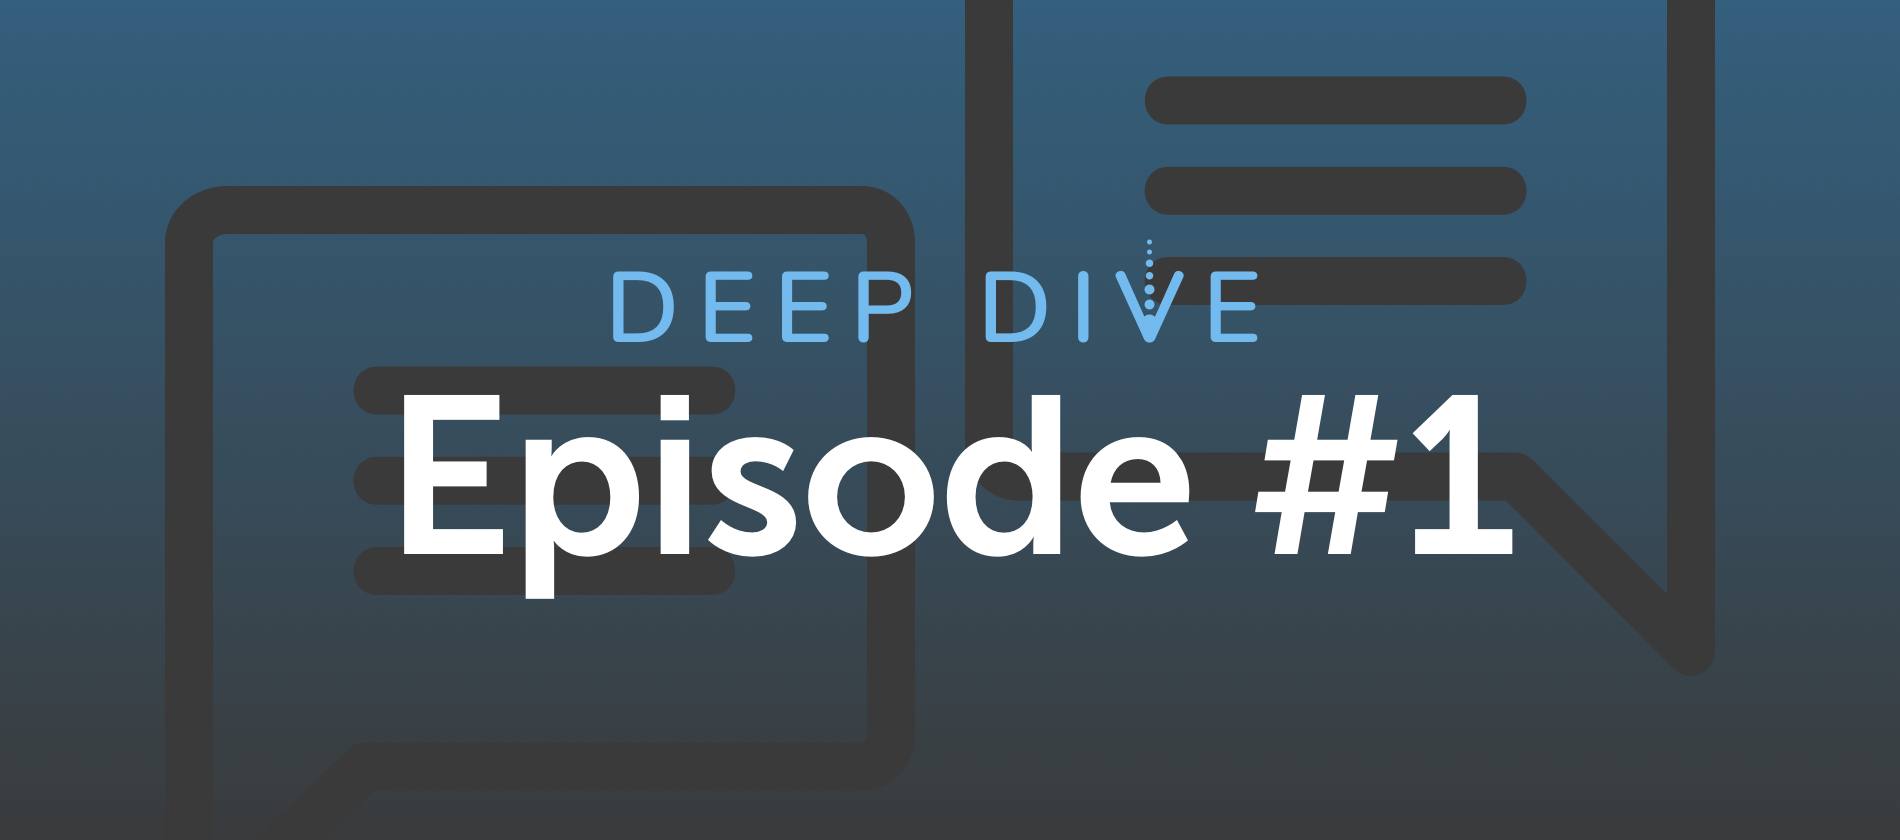 Introducing Distributed Deep Dive interviews by Ably